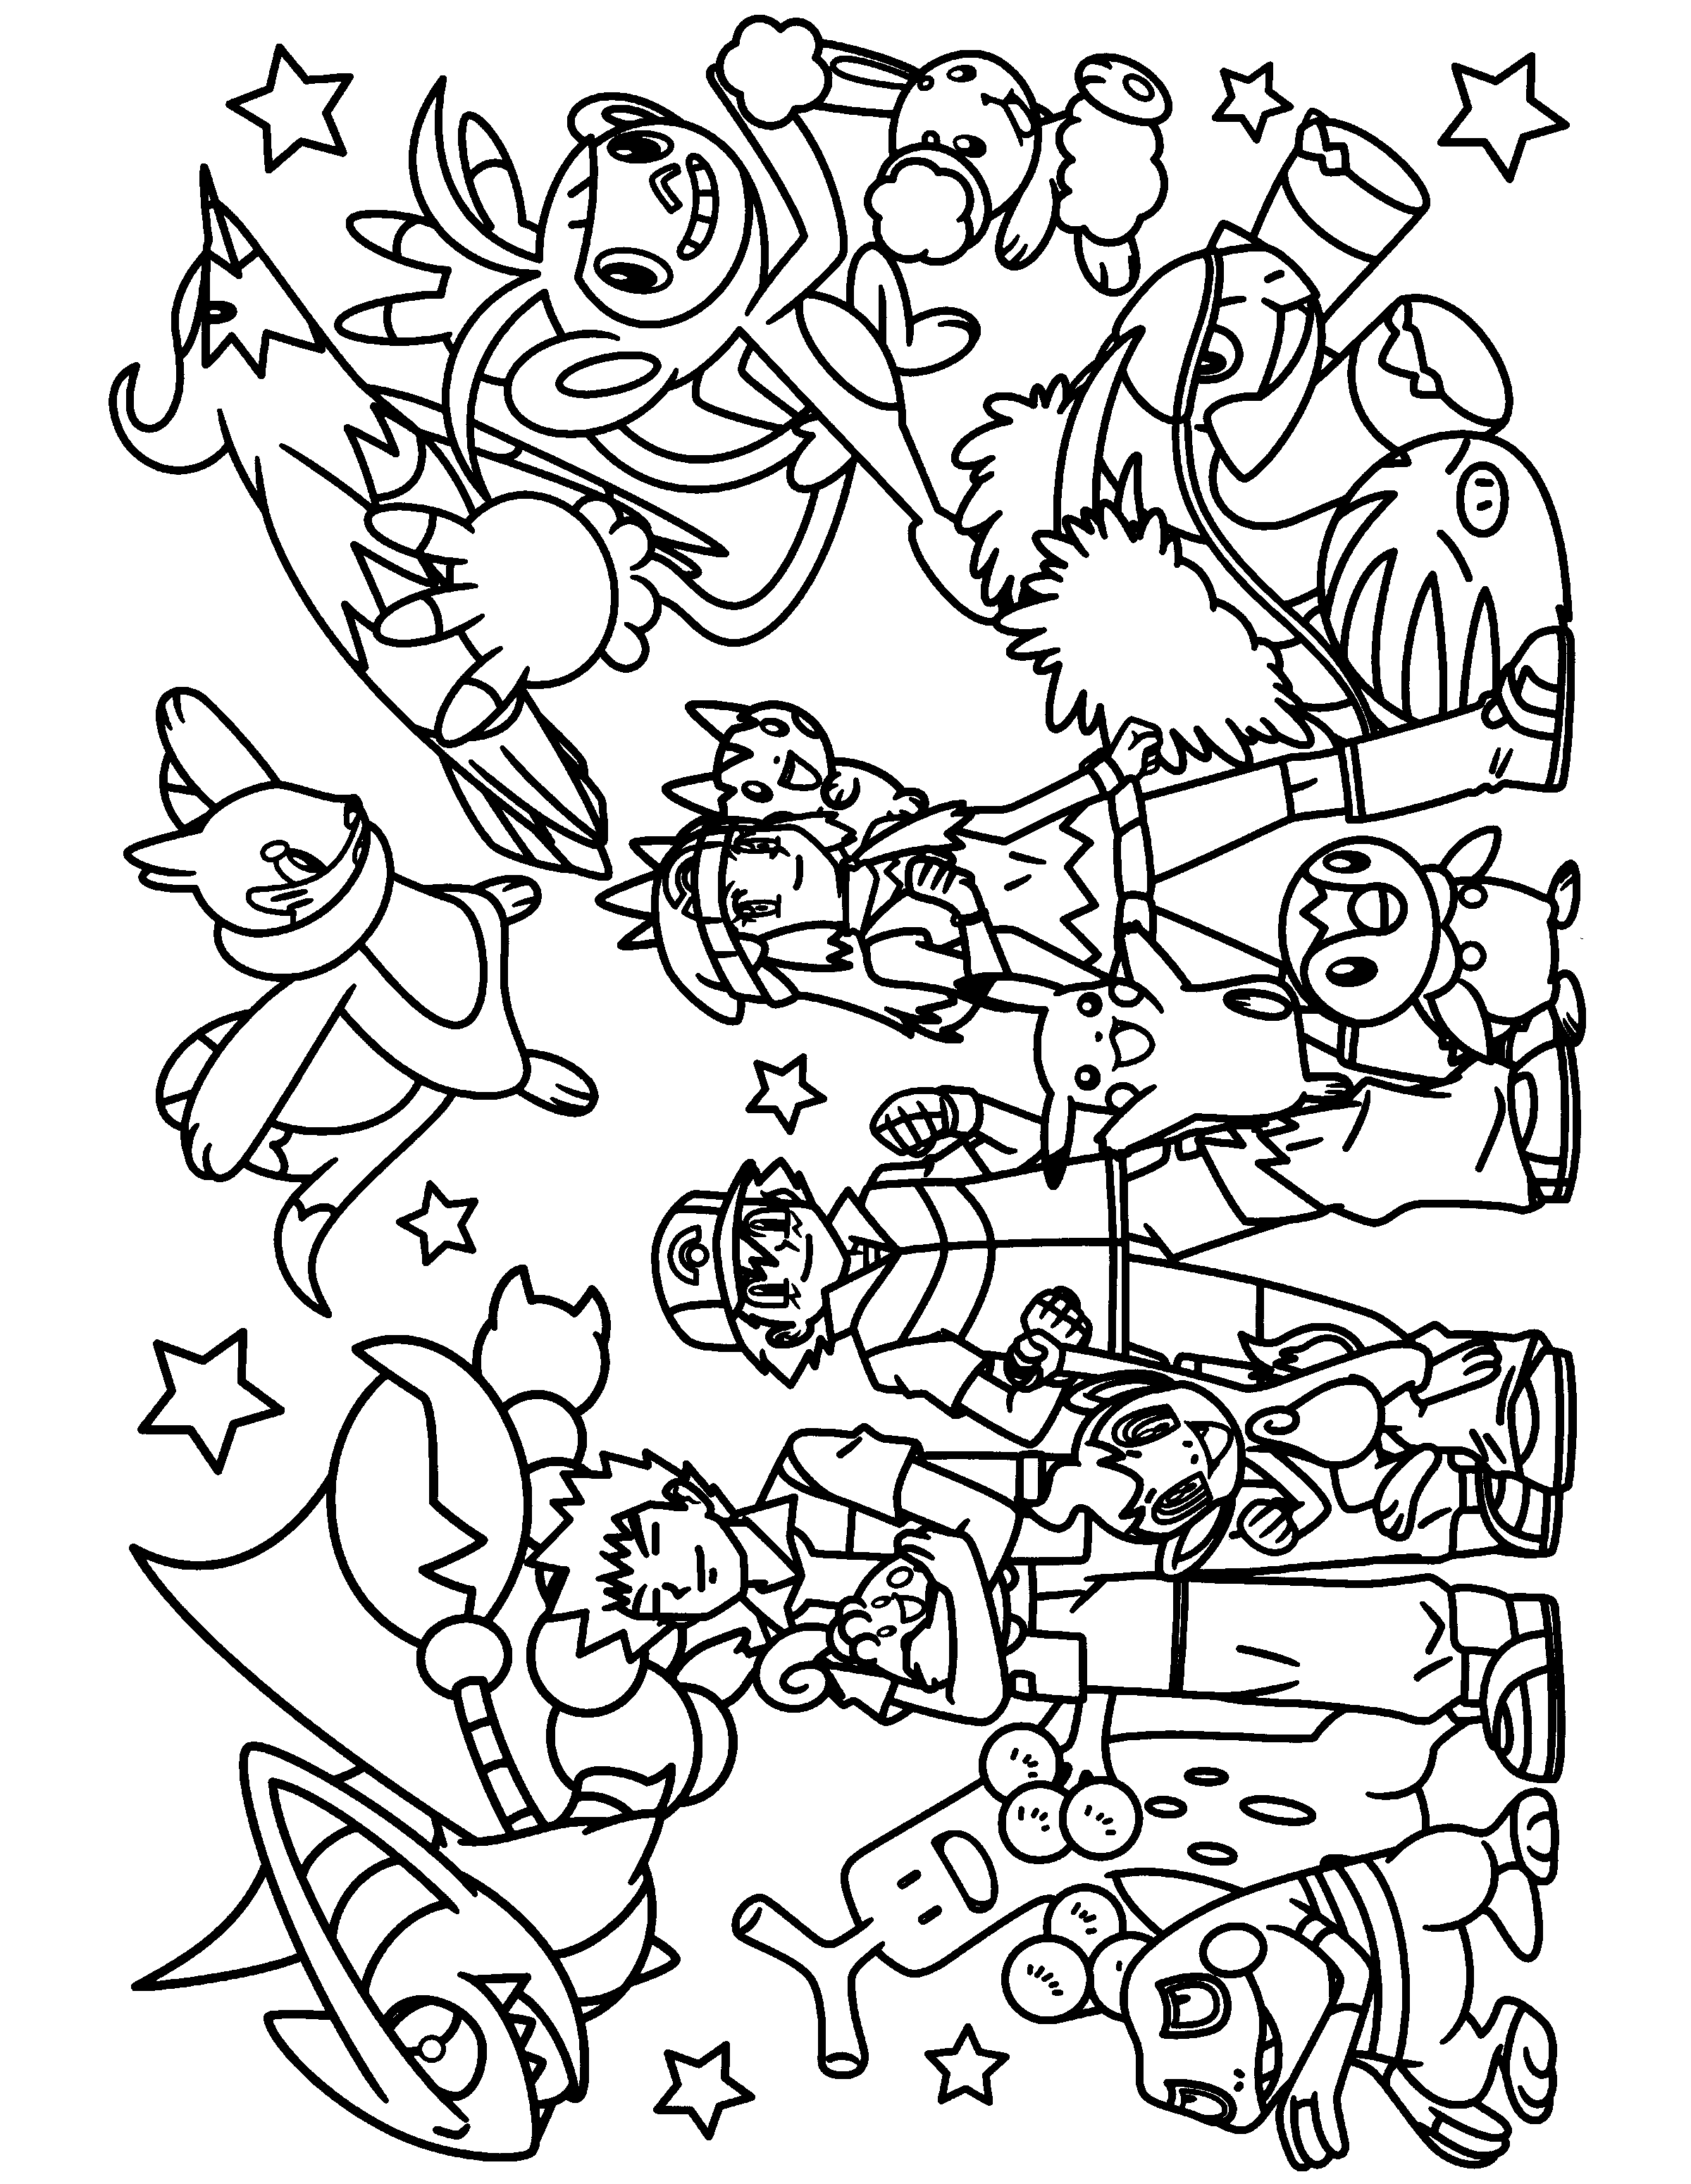 pakemon diamond pearl coloring pages - photo #9